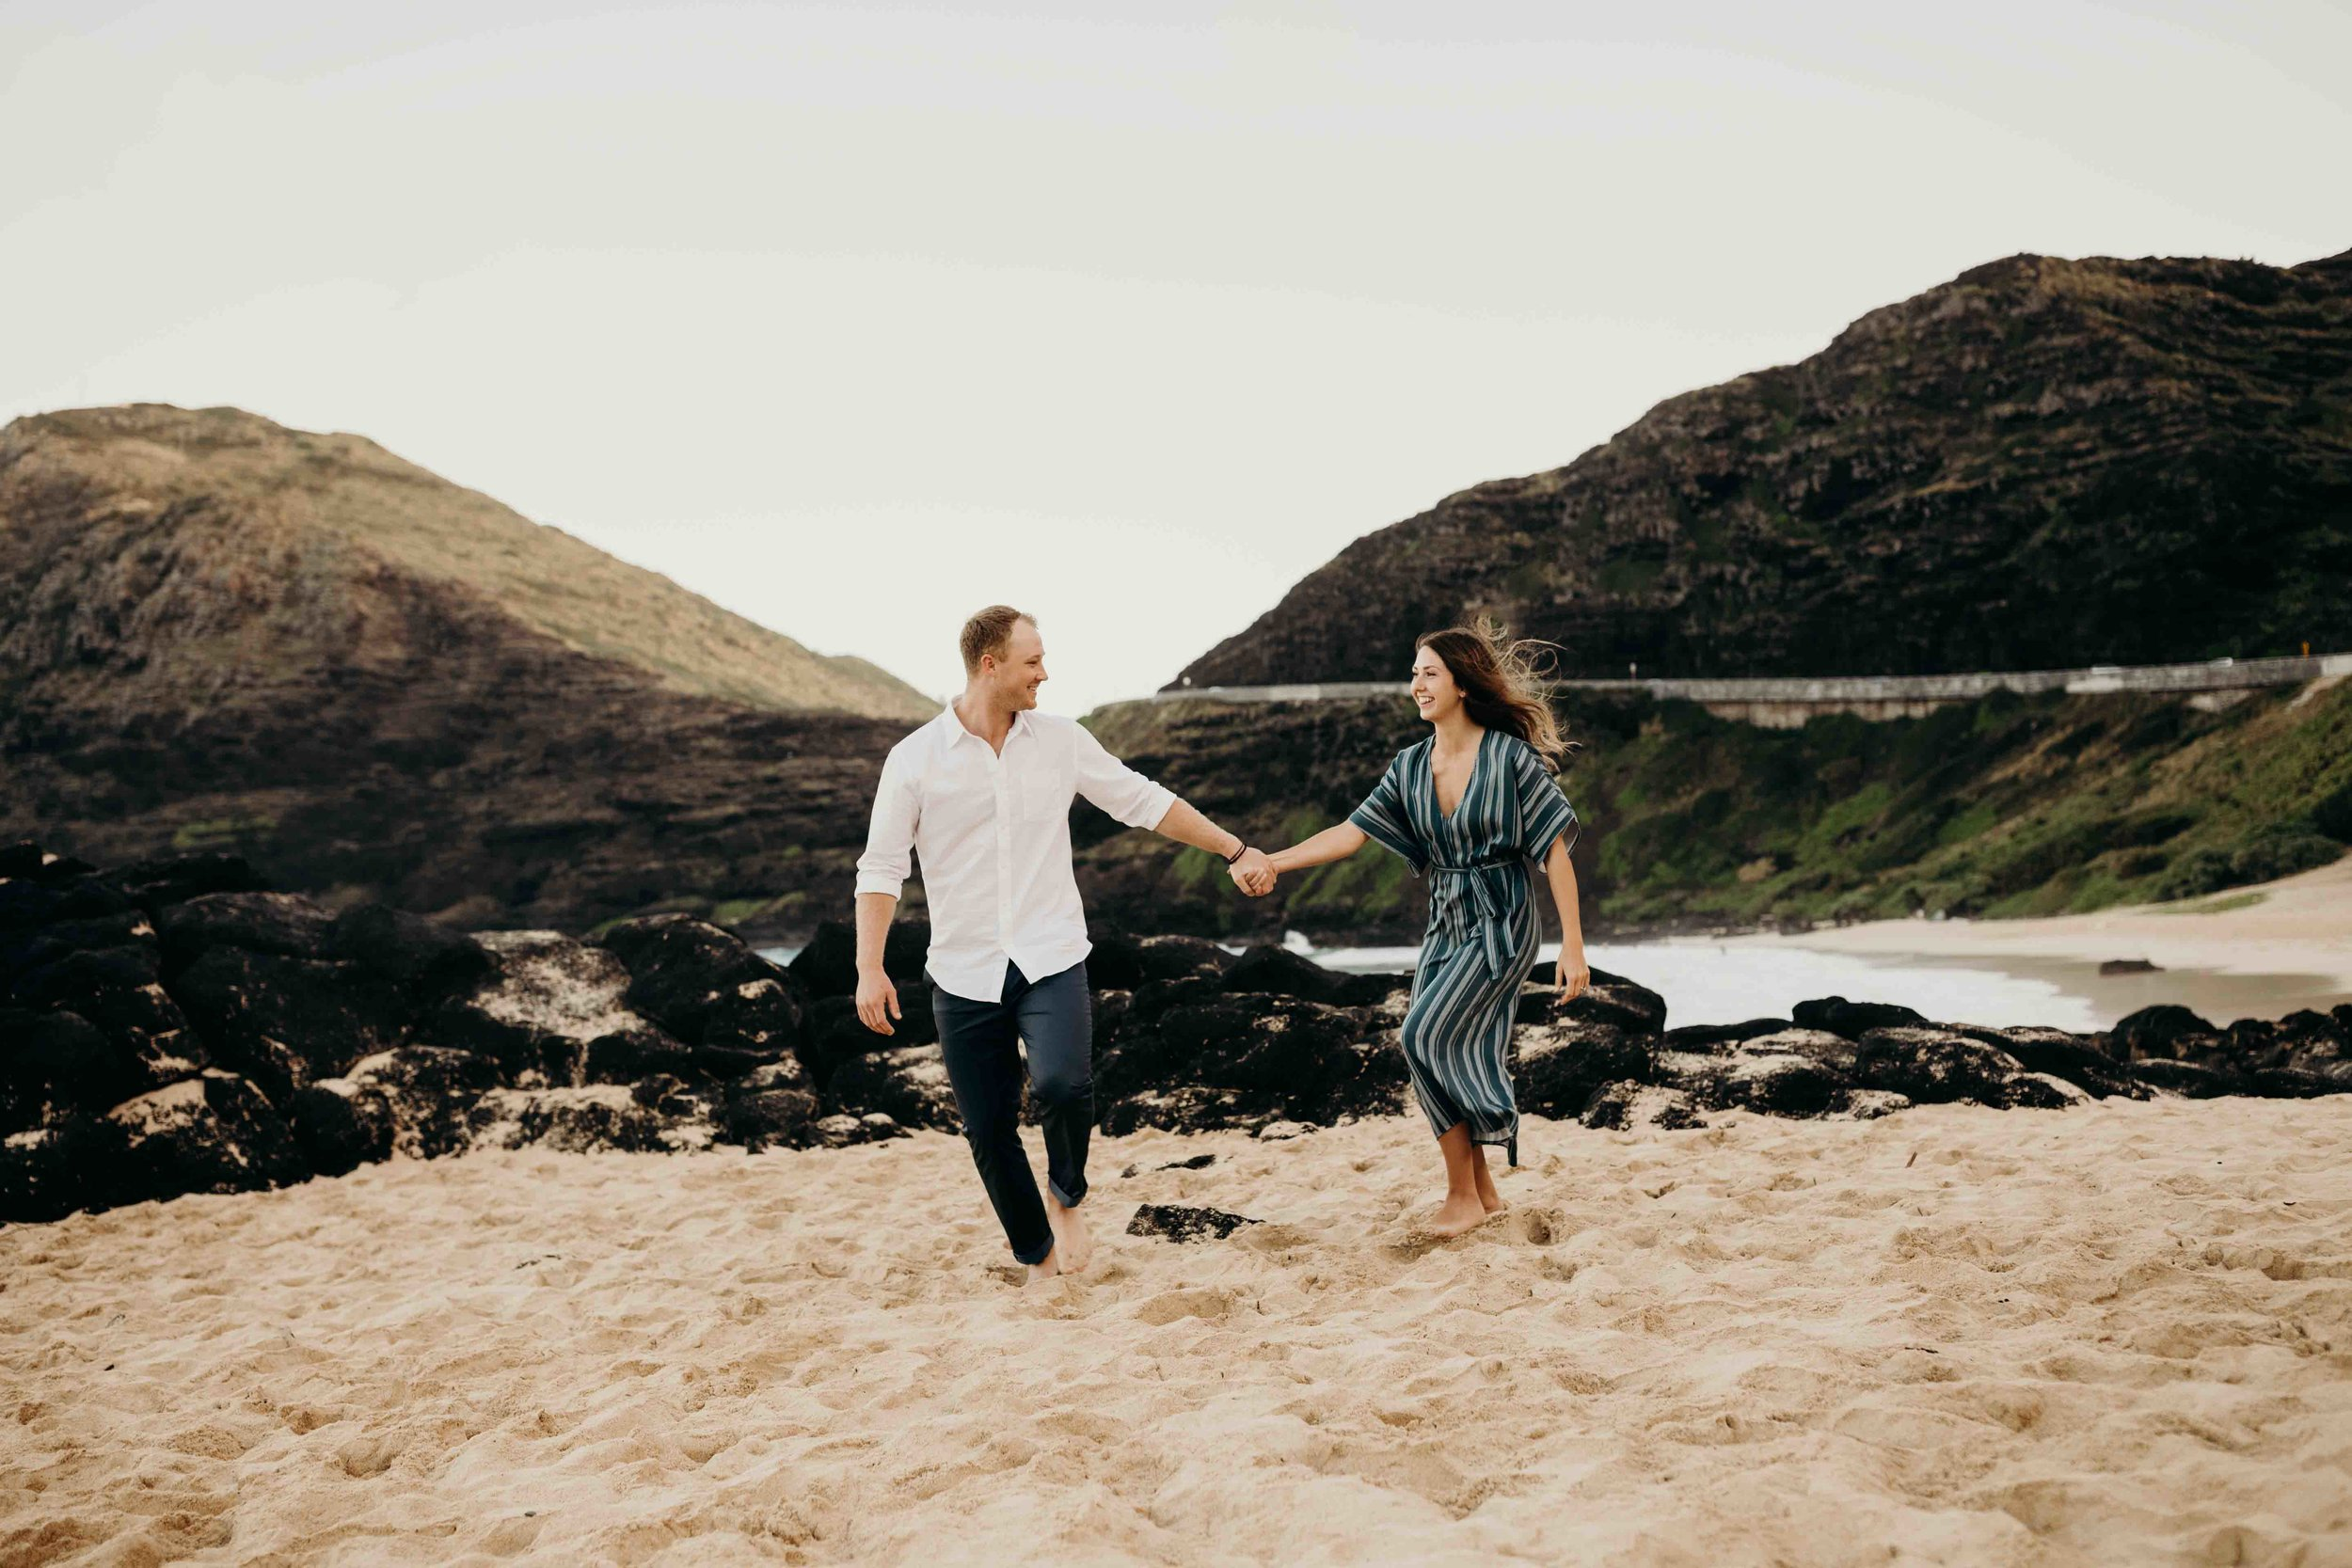 hawaii-engagement-photographer-keani-bakula-makapuu-beach-29.jpg